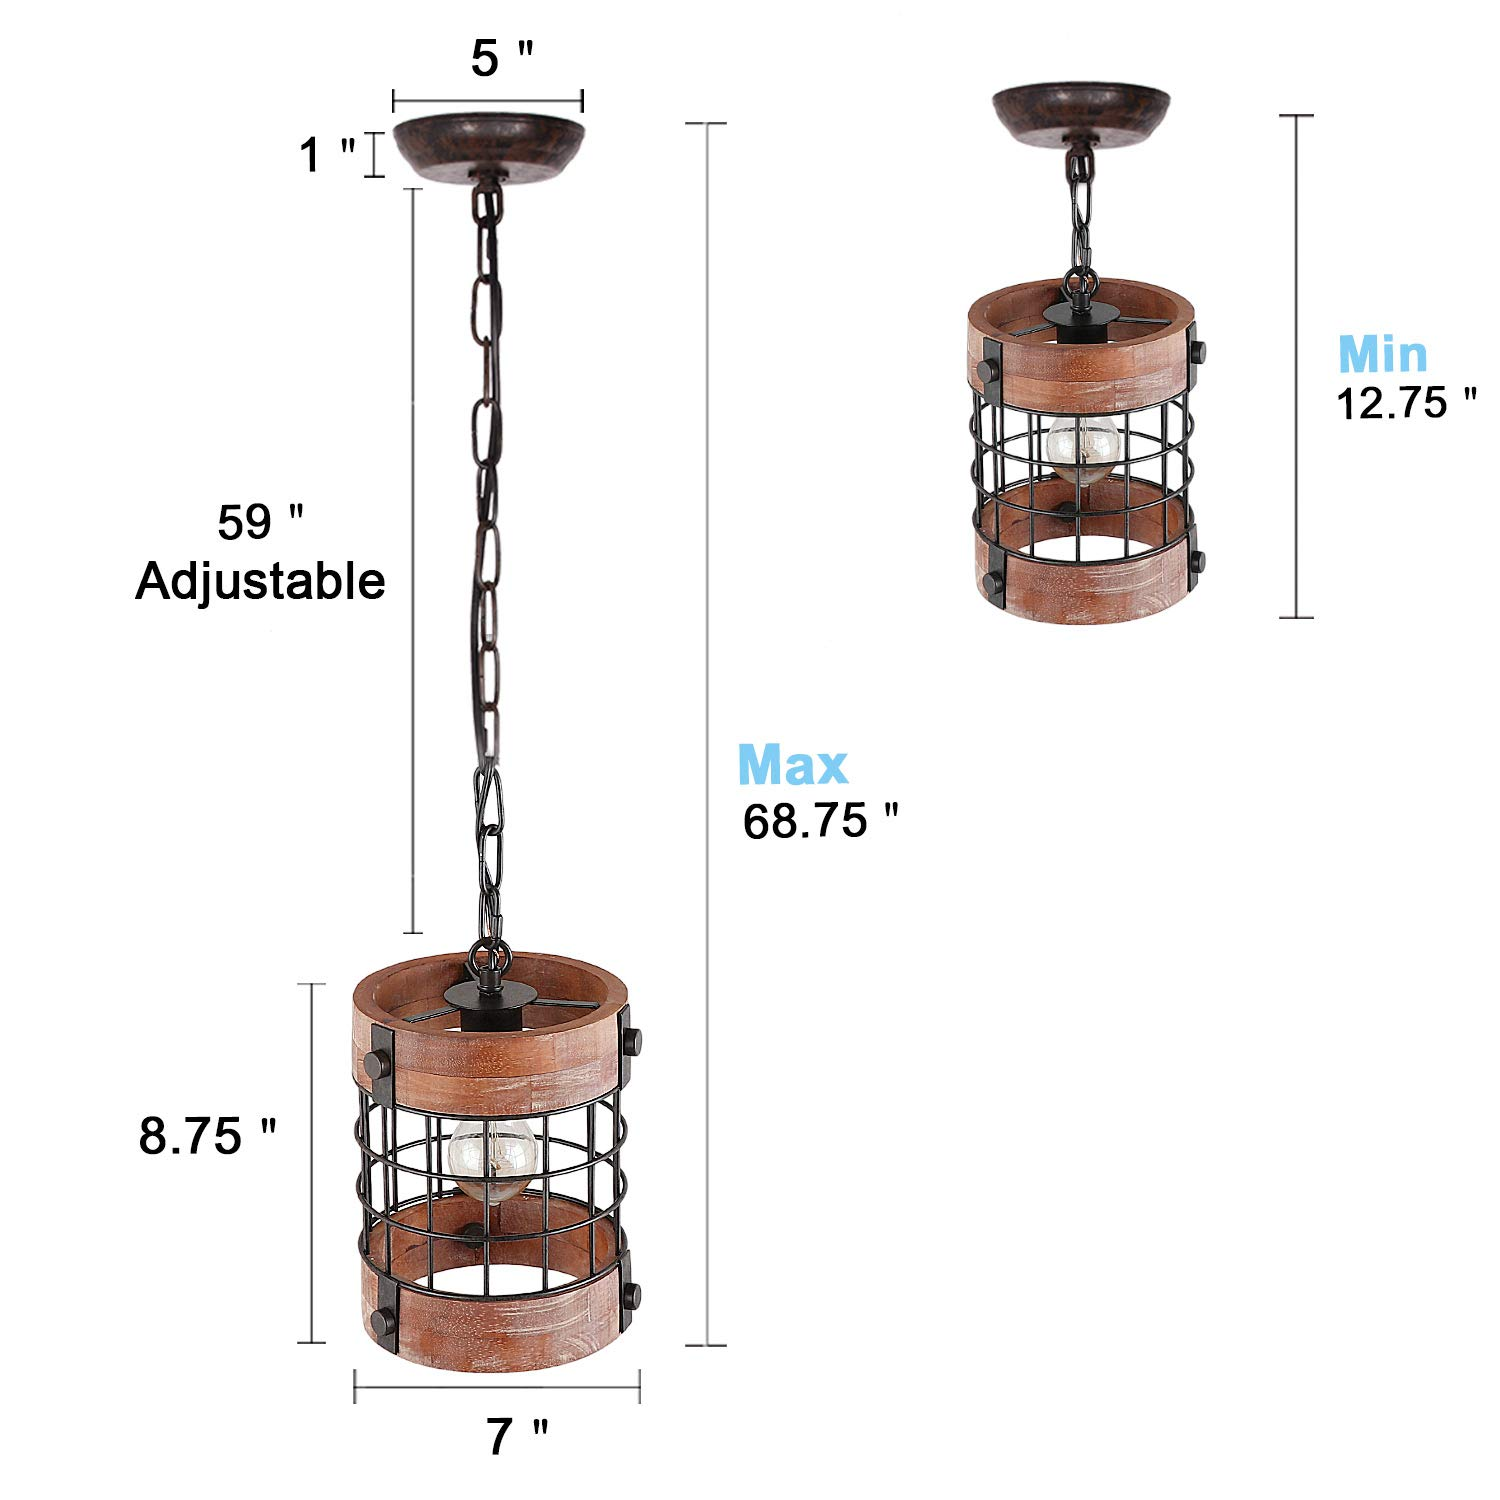 Anmytek Metal and Wood Chandelier Round Pendent Light Retro Rustic Loft Antique Lamp Edison Vintage Pipe Sconce Decorative Light Fixtures and Ceiling Light Luminaire